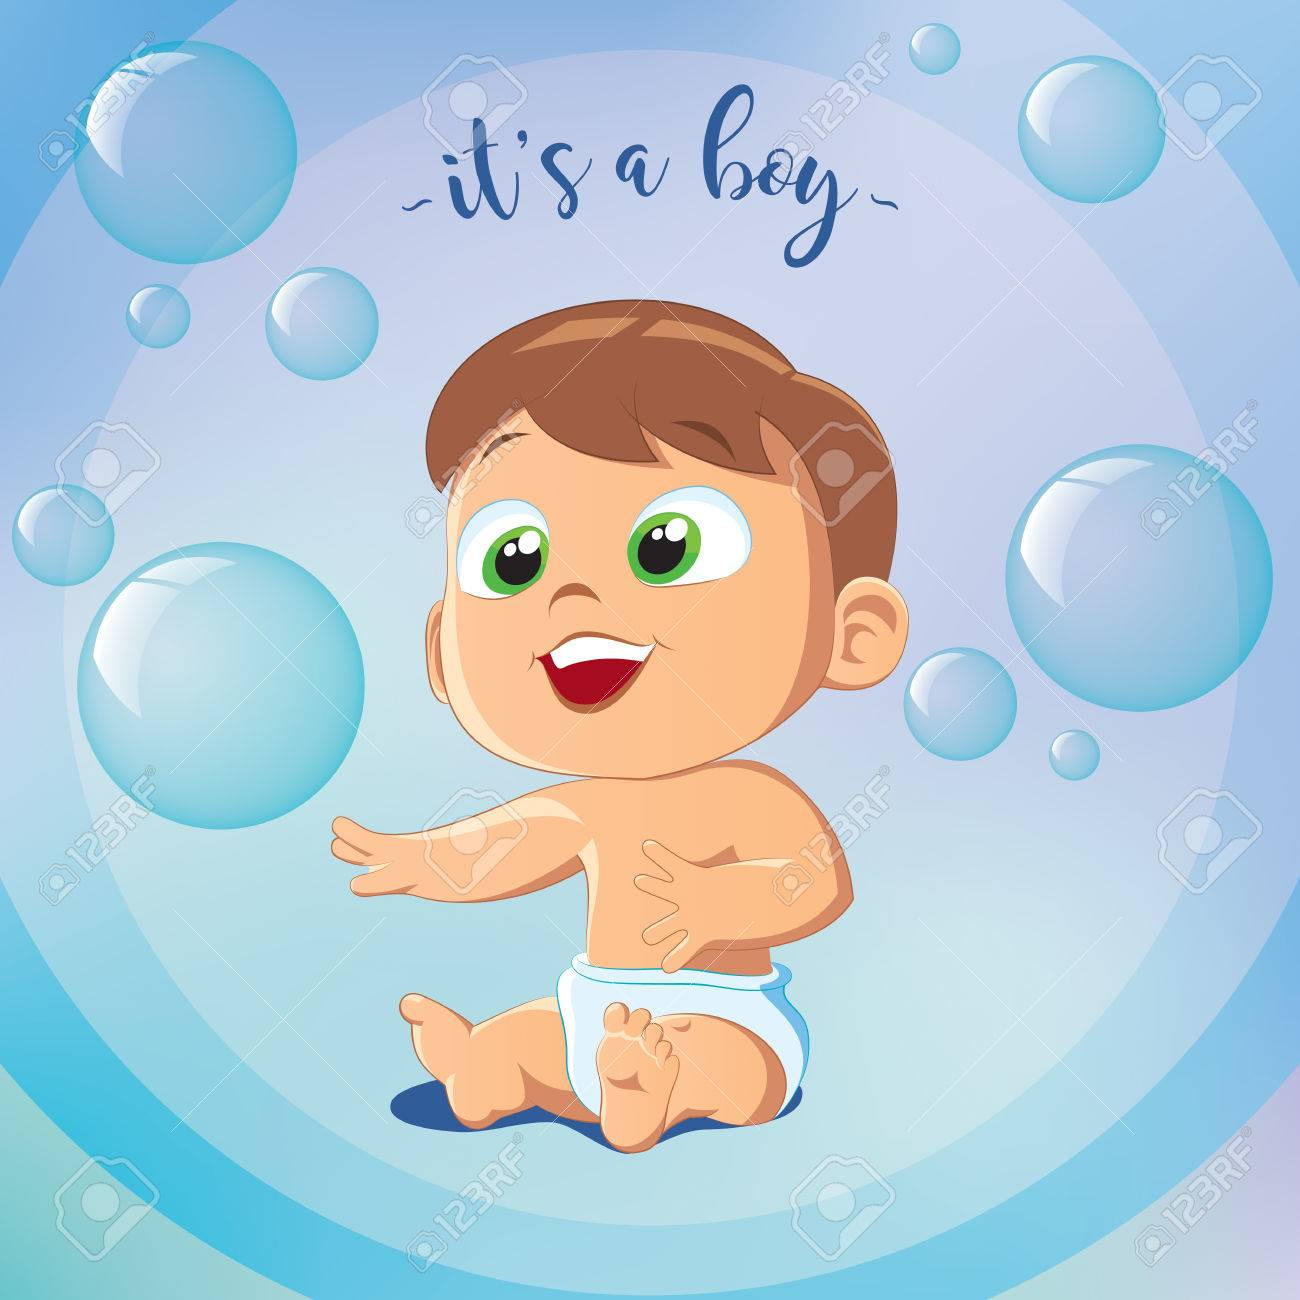 Its A Boy Happy Birthday Greeting Card Little Sitting On Floor Stock